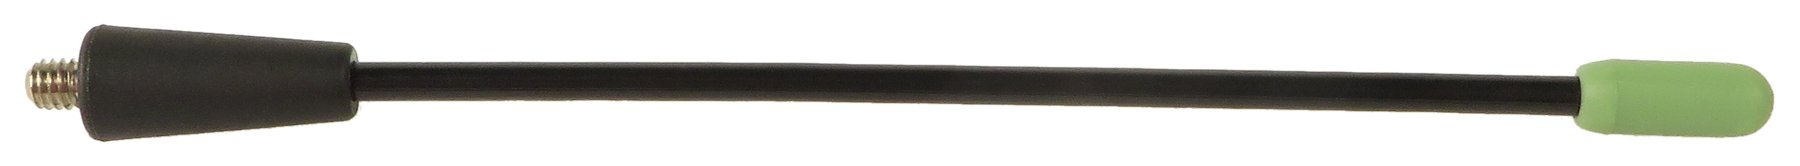 D-Band Antenna (655.500-680.375) for T1000, 3000, and 4000 Series